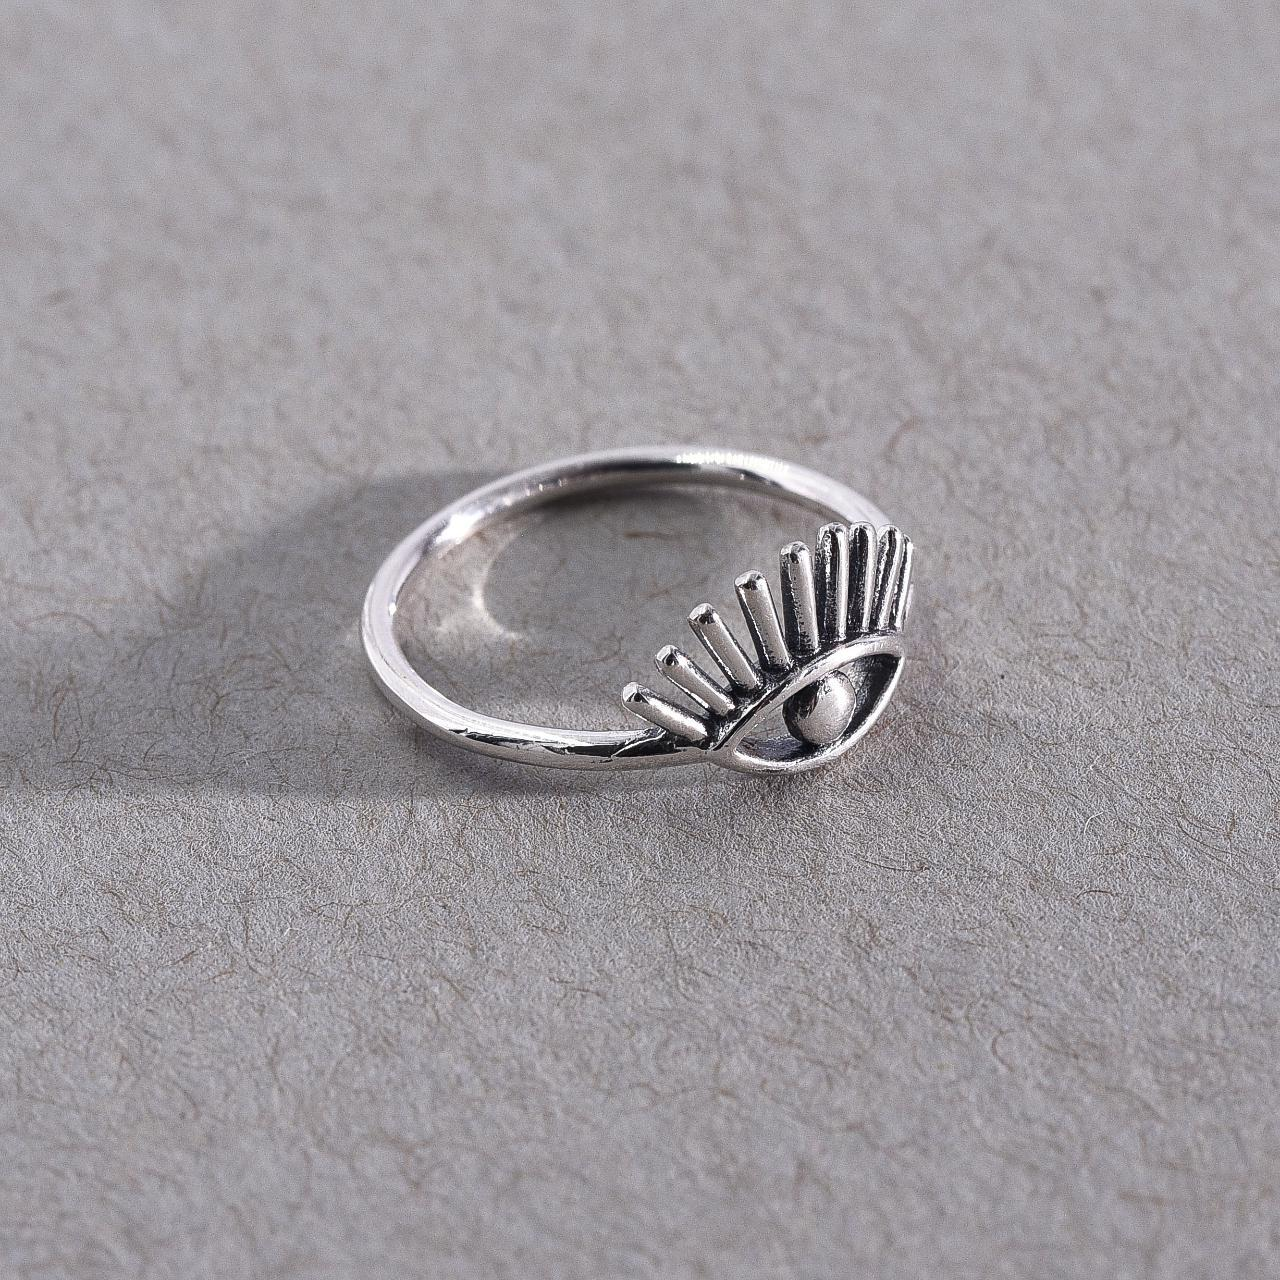 Product Image 1 - Sterling Silver Ring  Size 8  Will ship